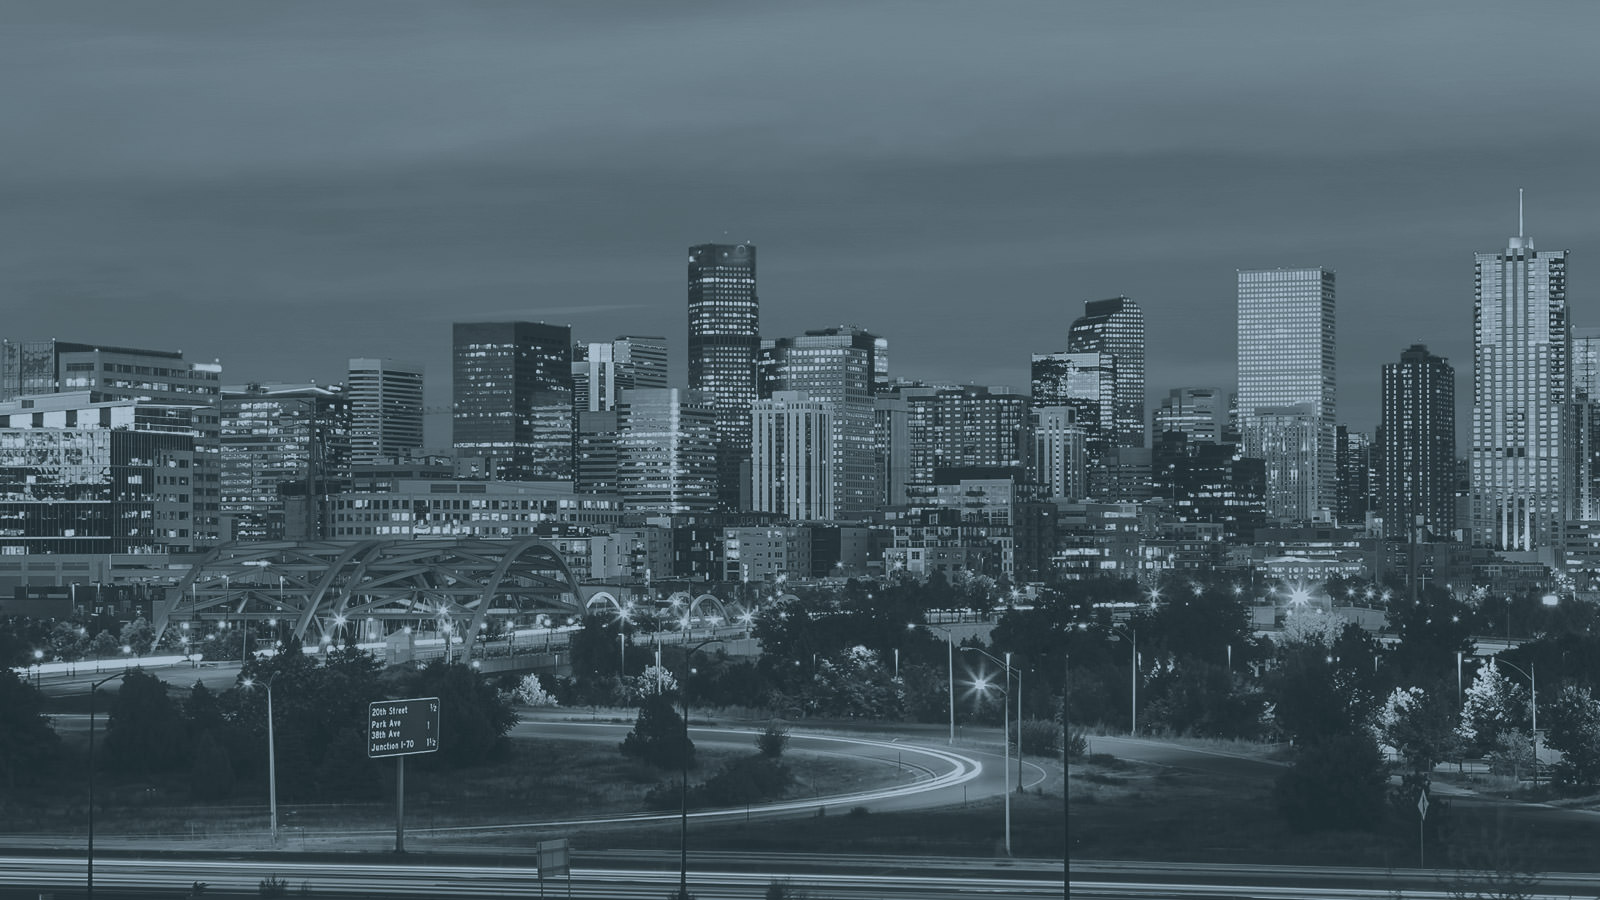 Denver Skyline in B&W